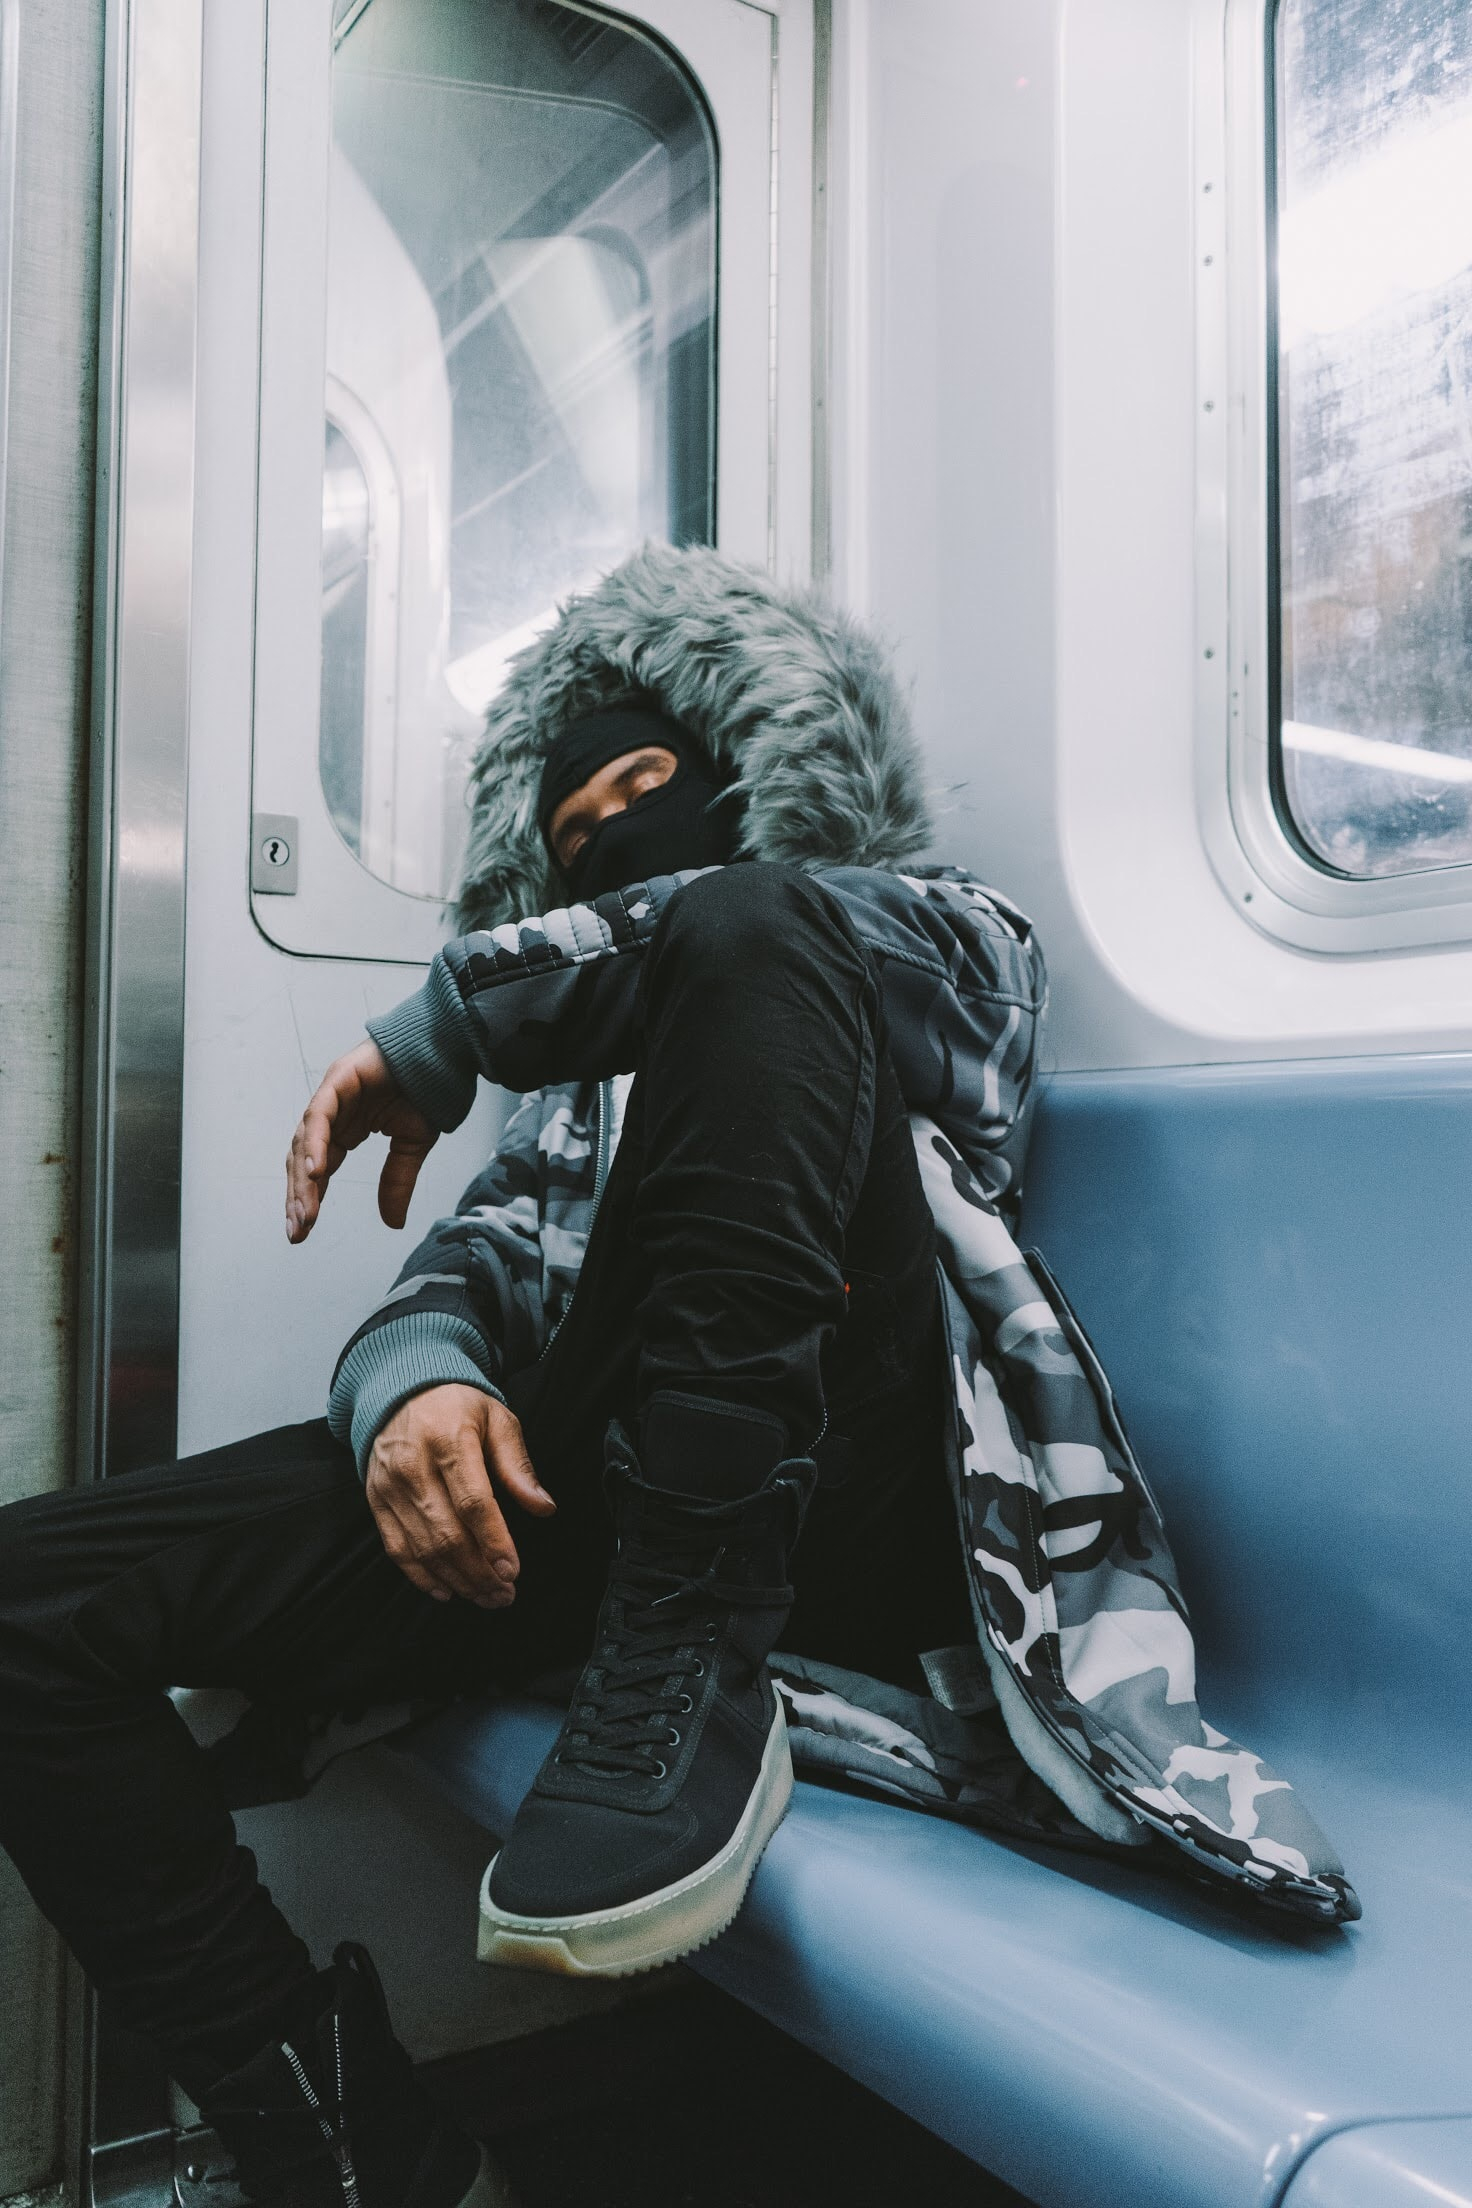 man sitting while leaning on the corner of passenger train wearing fur jacket